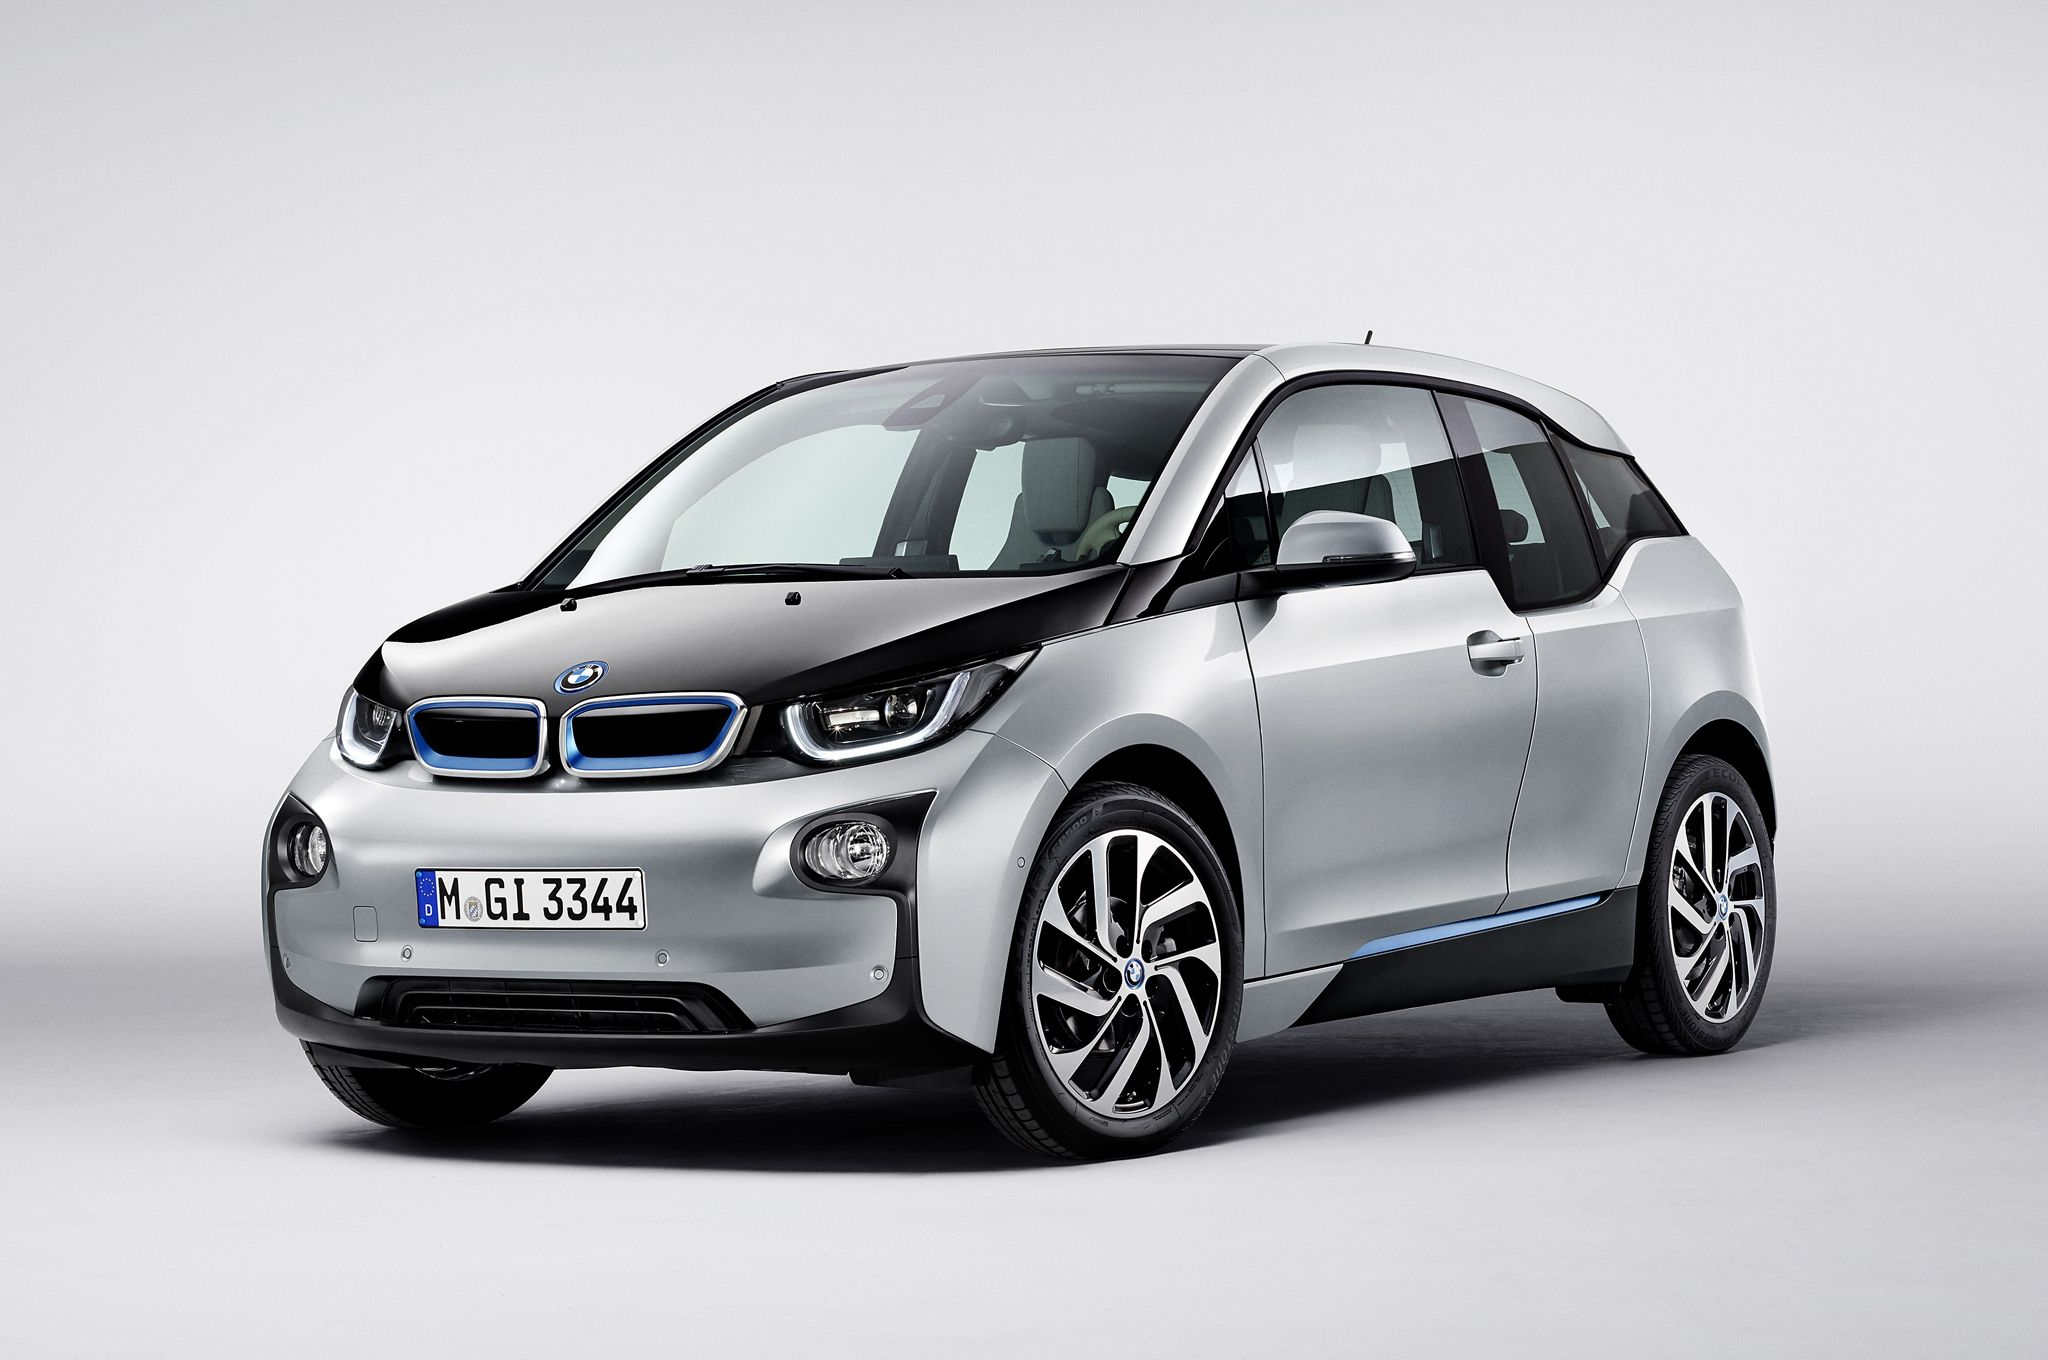 2015 Bmw I3 Check Out Bmw S 2015 Vehicle Line Up Some Of Which